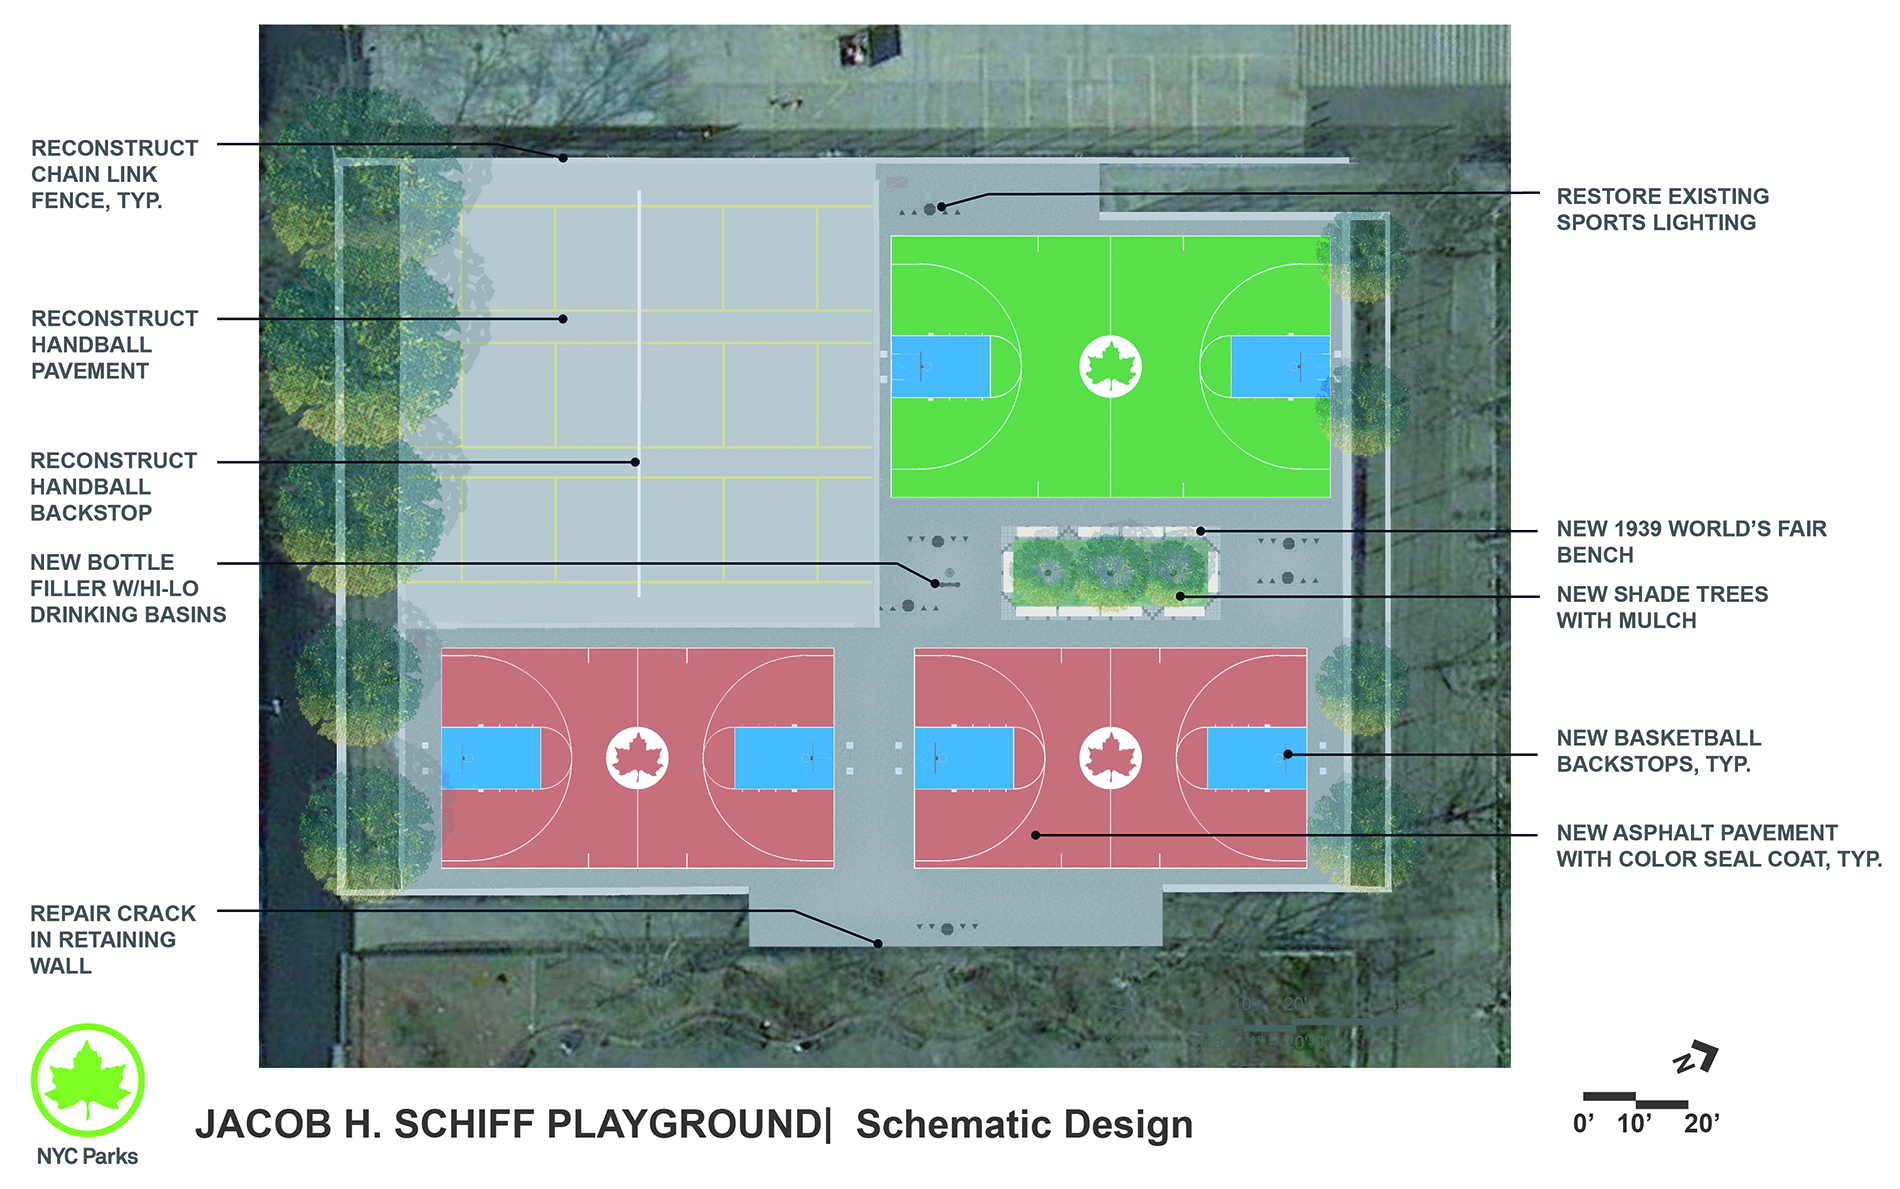 Design of Jacob H. Schiff Playground Basketball and Handball Courts Reconstruction